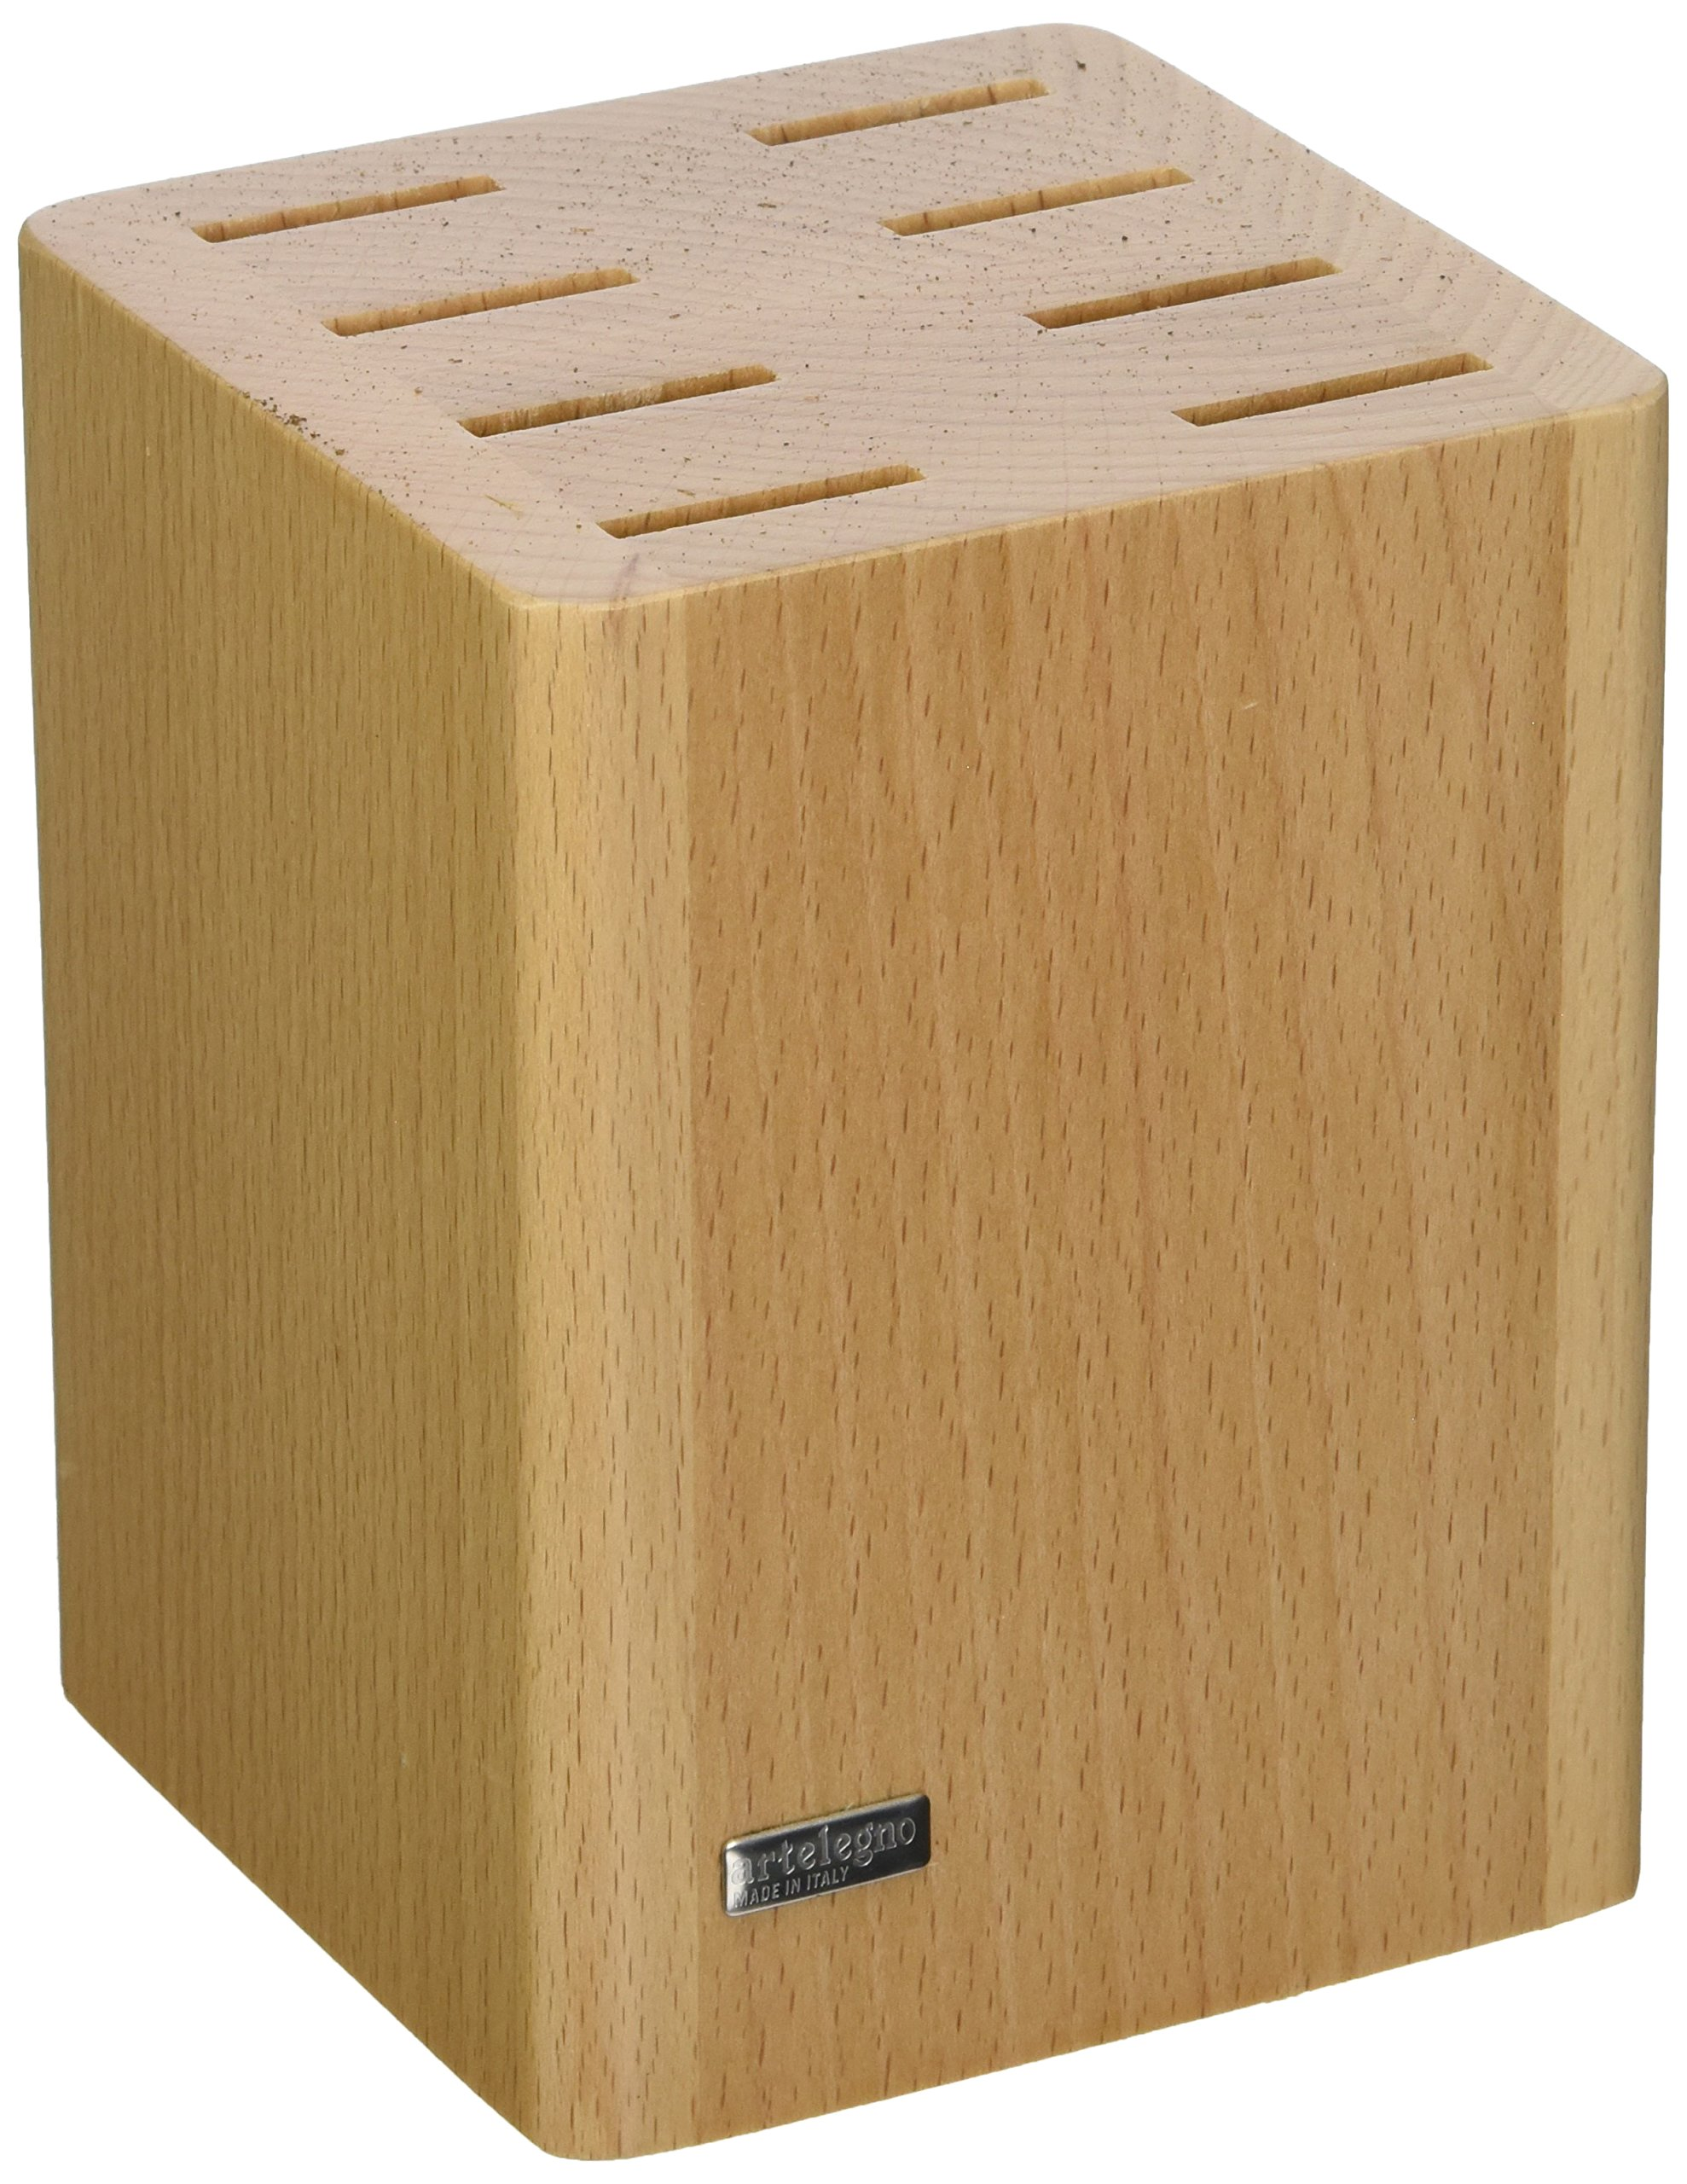 Artelegno Magnetic Knife Block Solid Beech Wood 2 Panel Displays/Protects 10 High-End Knives Elegantly, Luxurious Italian Milano Collection by Master Craftsmen, Eco-friendly, Natural Finish